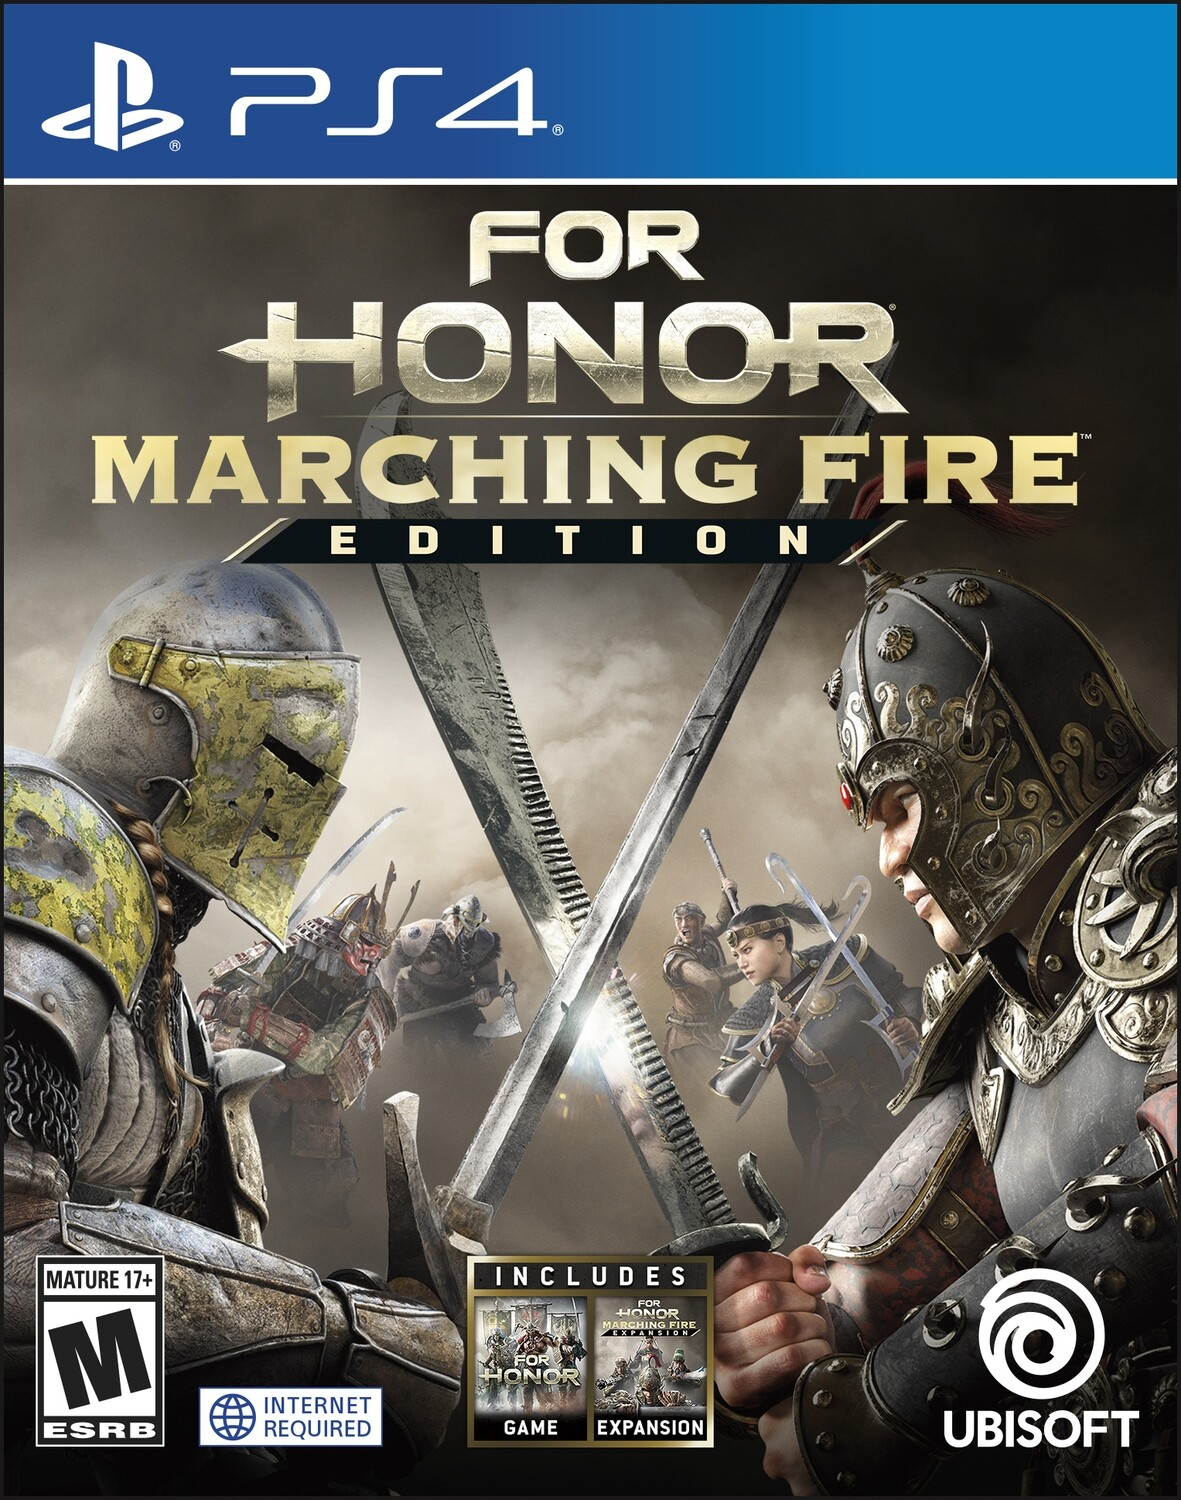 PS4 For Honor Marching Fire Edition